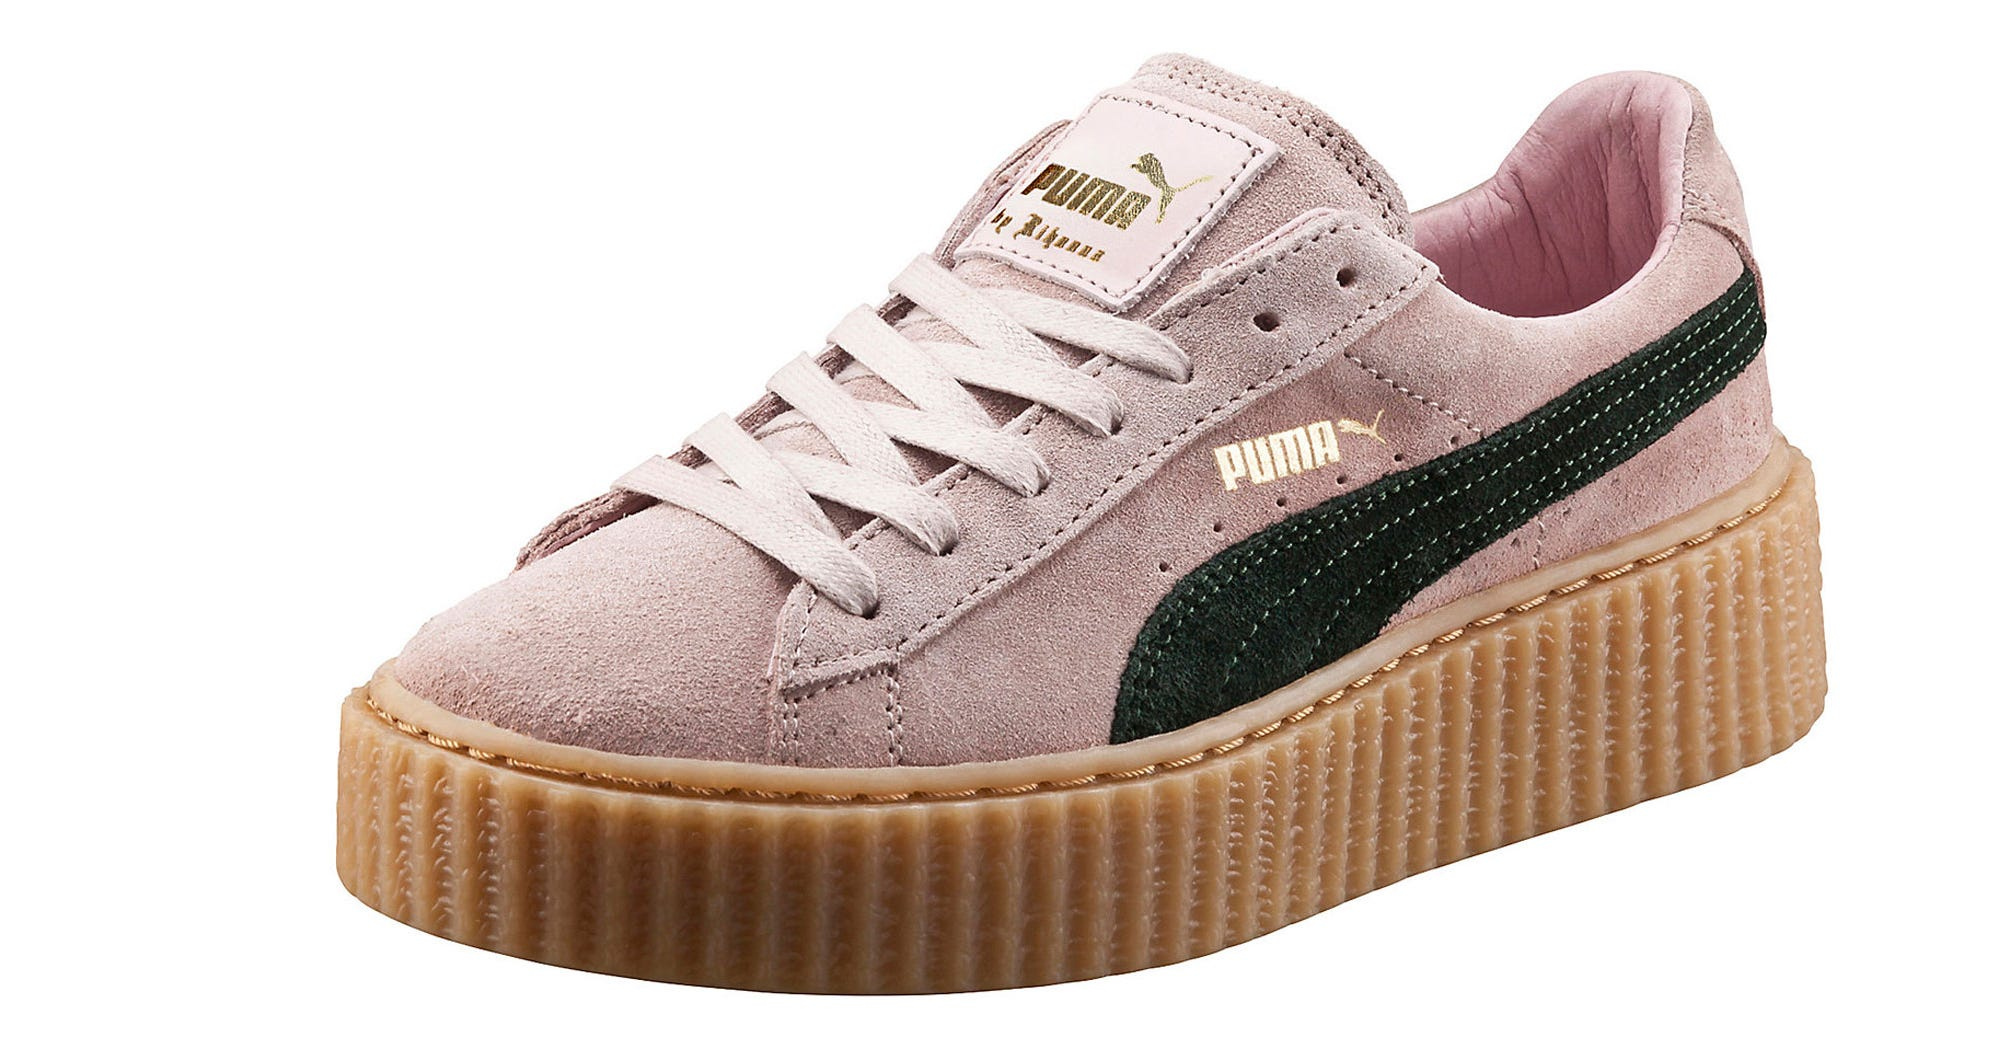 new arrival 42e00 9b492 Puma Best Selling Sold Out Fenty Creepers